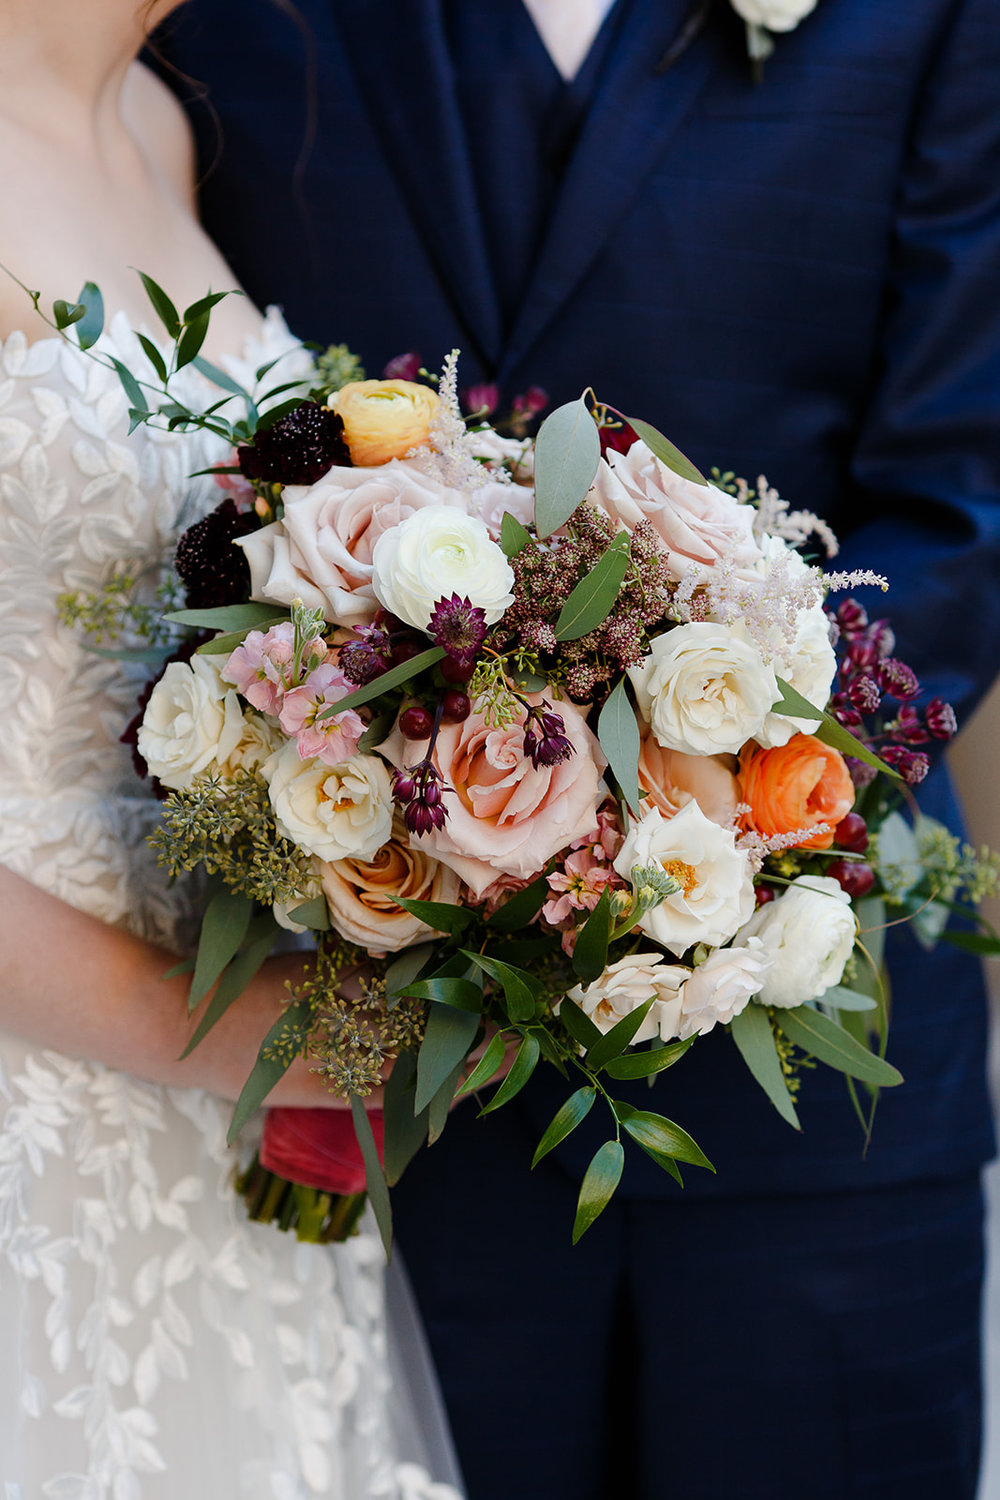 Kehoe Designs created this beautiful autumn bouquet with textured florals and greenery.